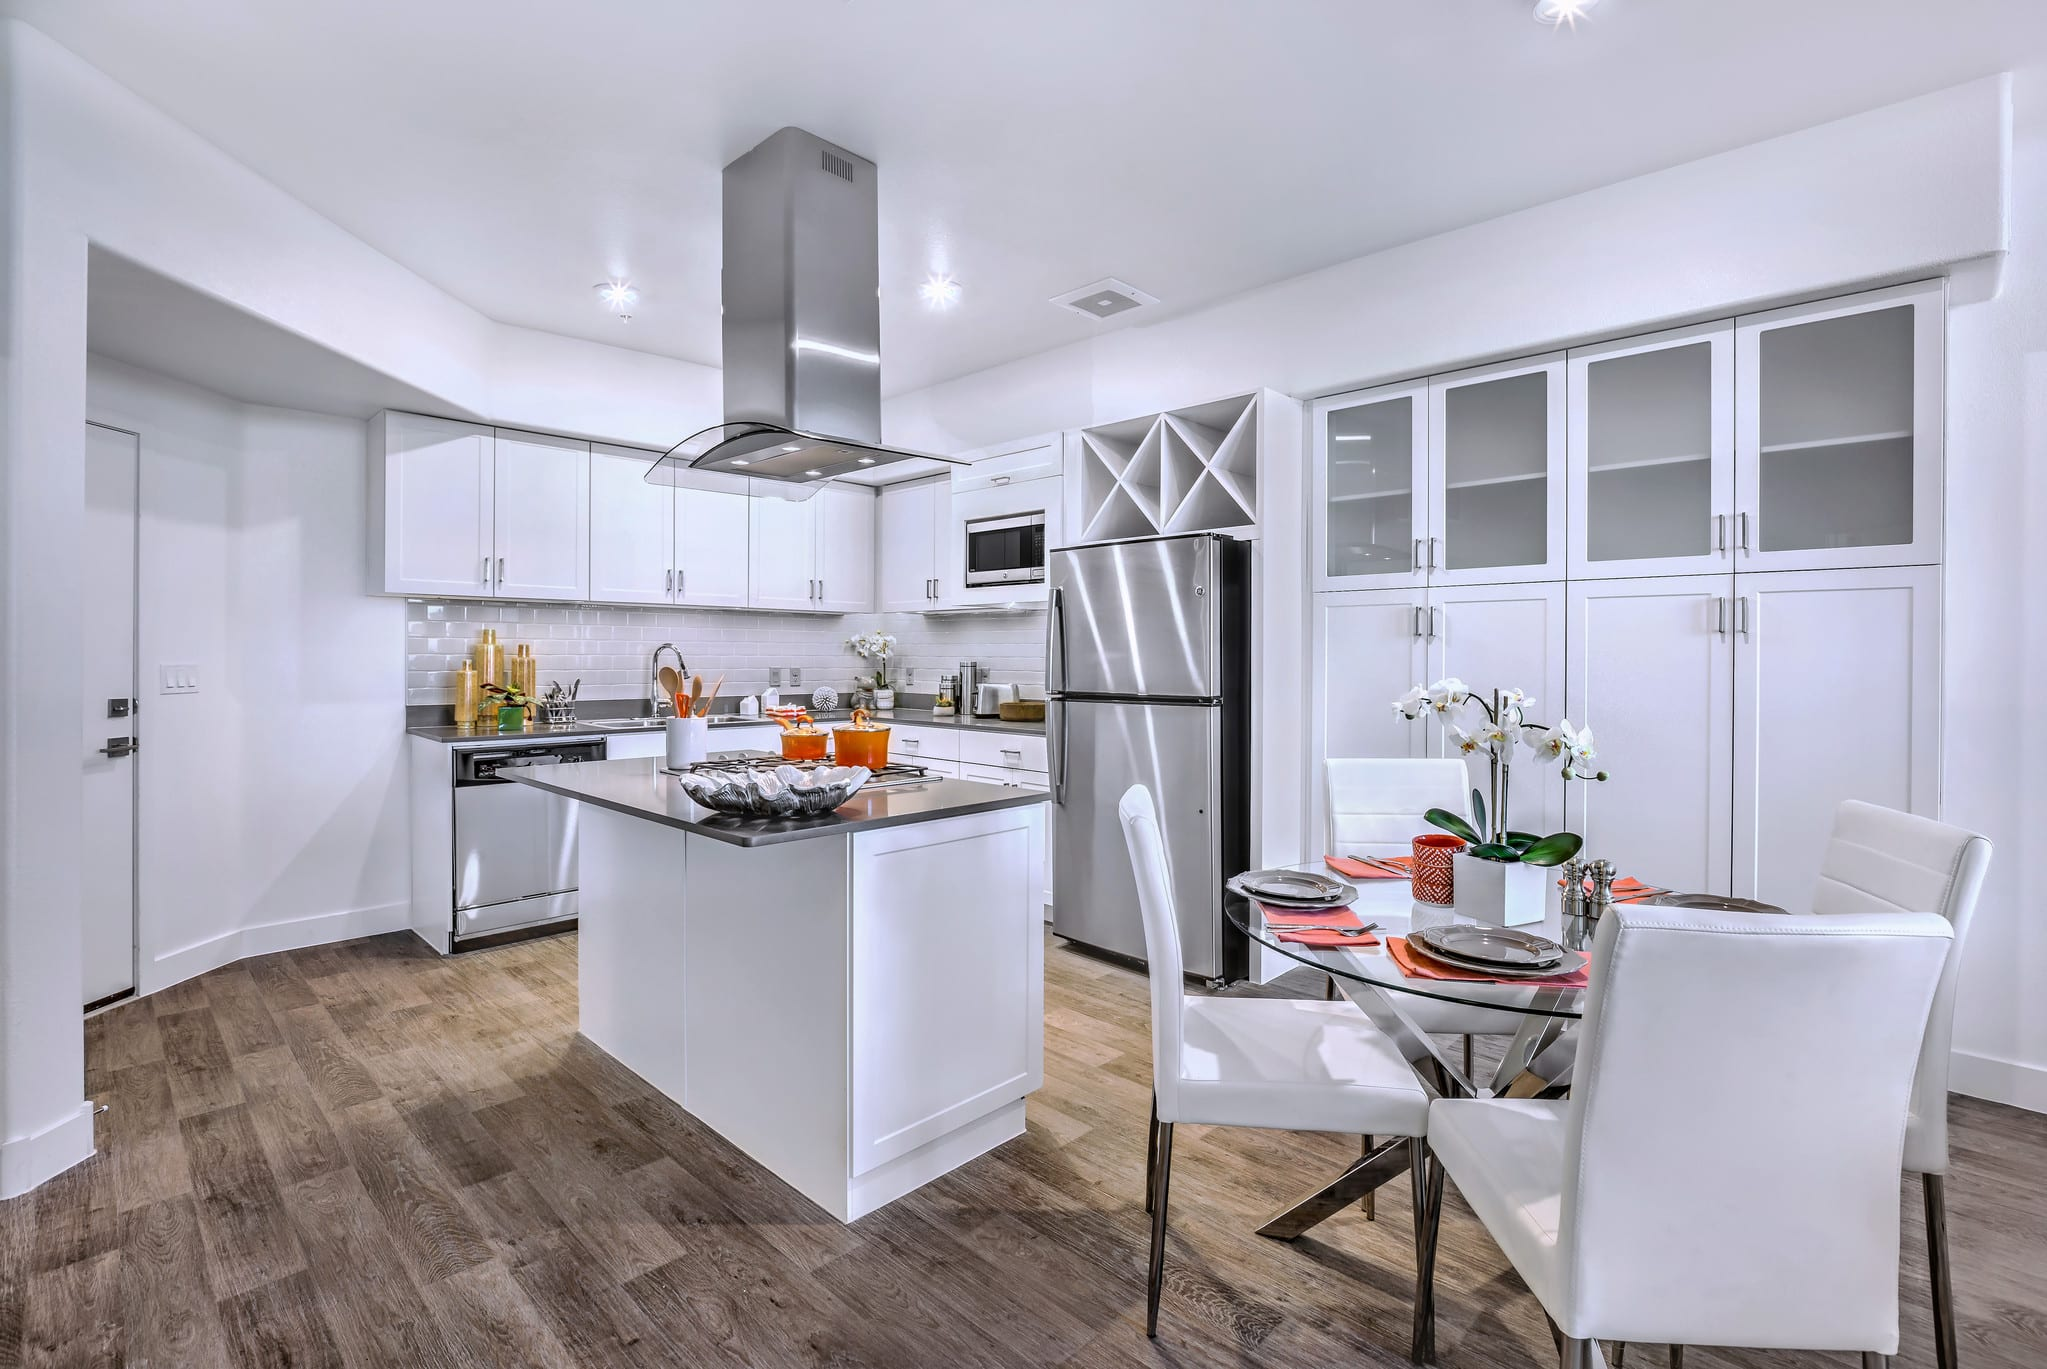 Contemporary kitchen with wood-style flooring, large island, quartz countertops, stainless steel appliances, tile backsplash, and extended white cabinetry. The open-concept layout includes a round dining table with dinner placements.